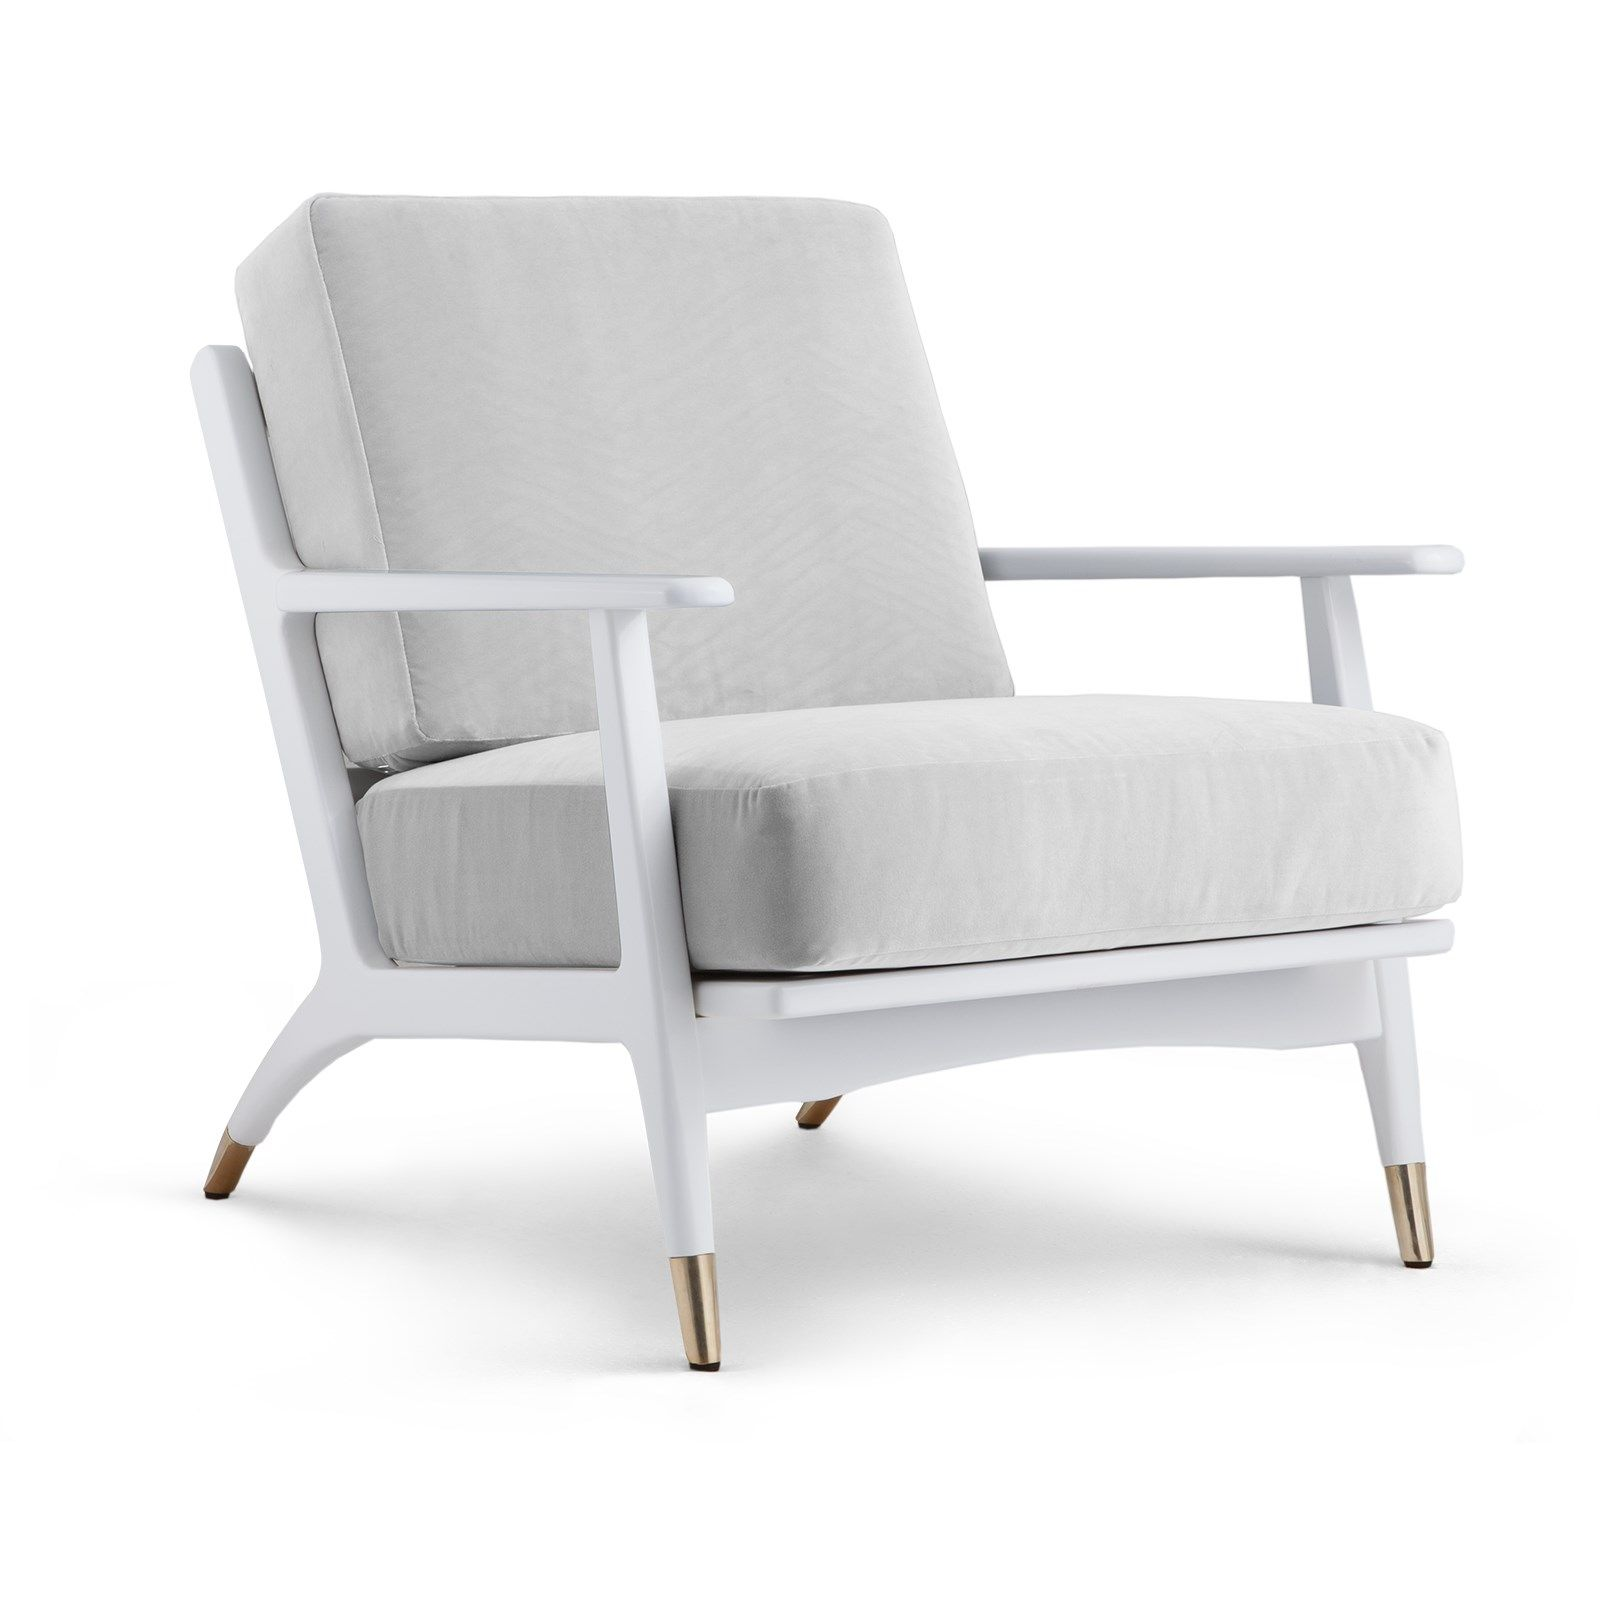 white lounge chair covers distressed kitchen chairs hart sold separately living room redo